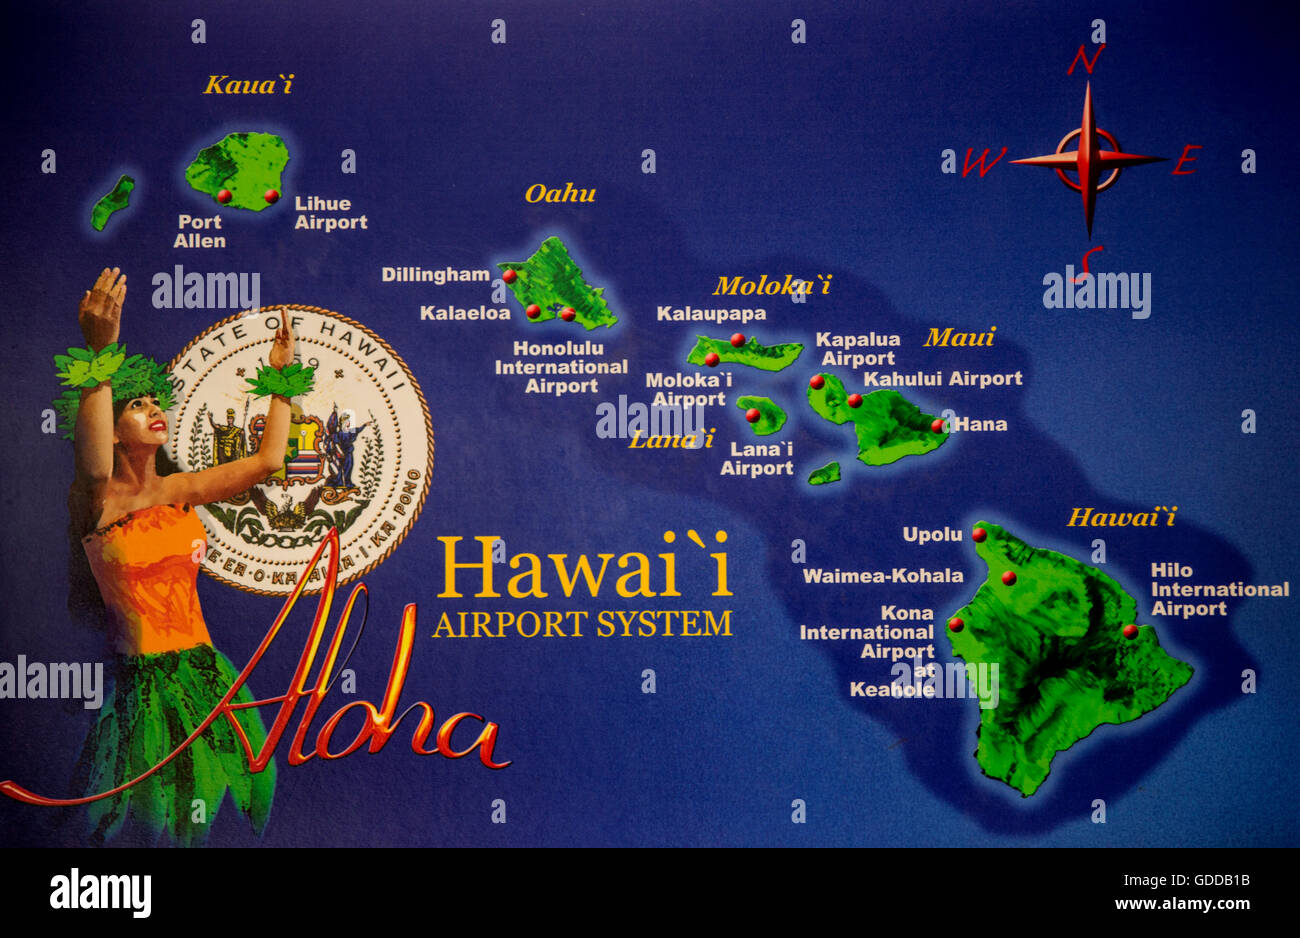 Airports In Maui Hawaii Map.Honolulu Oahu Map Airports Usa Hawaii America Islands Isles Stock